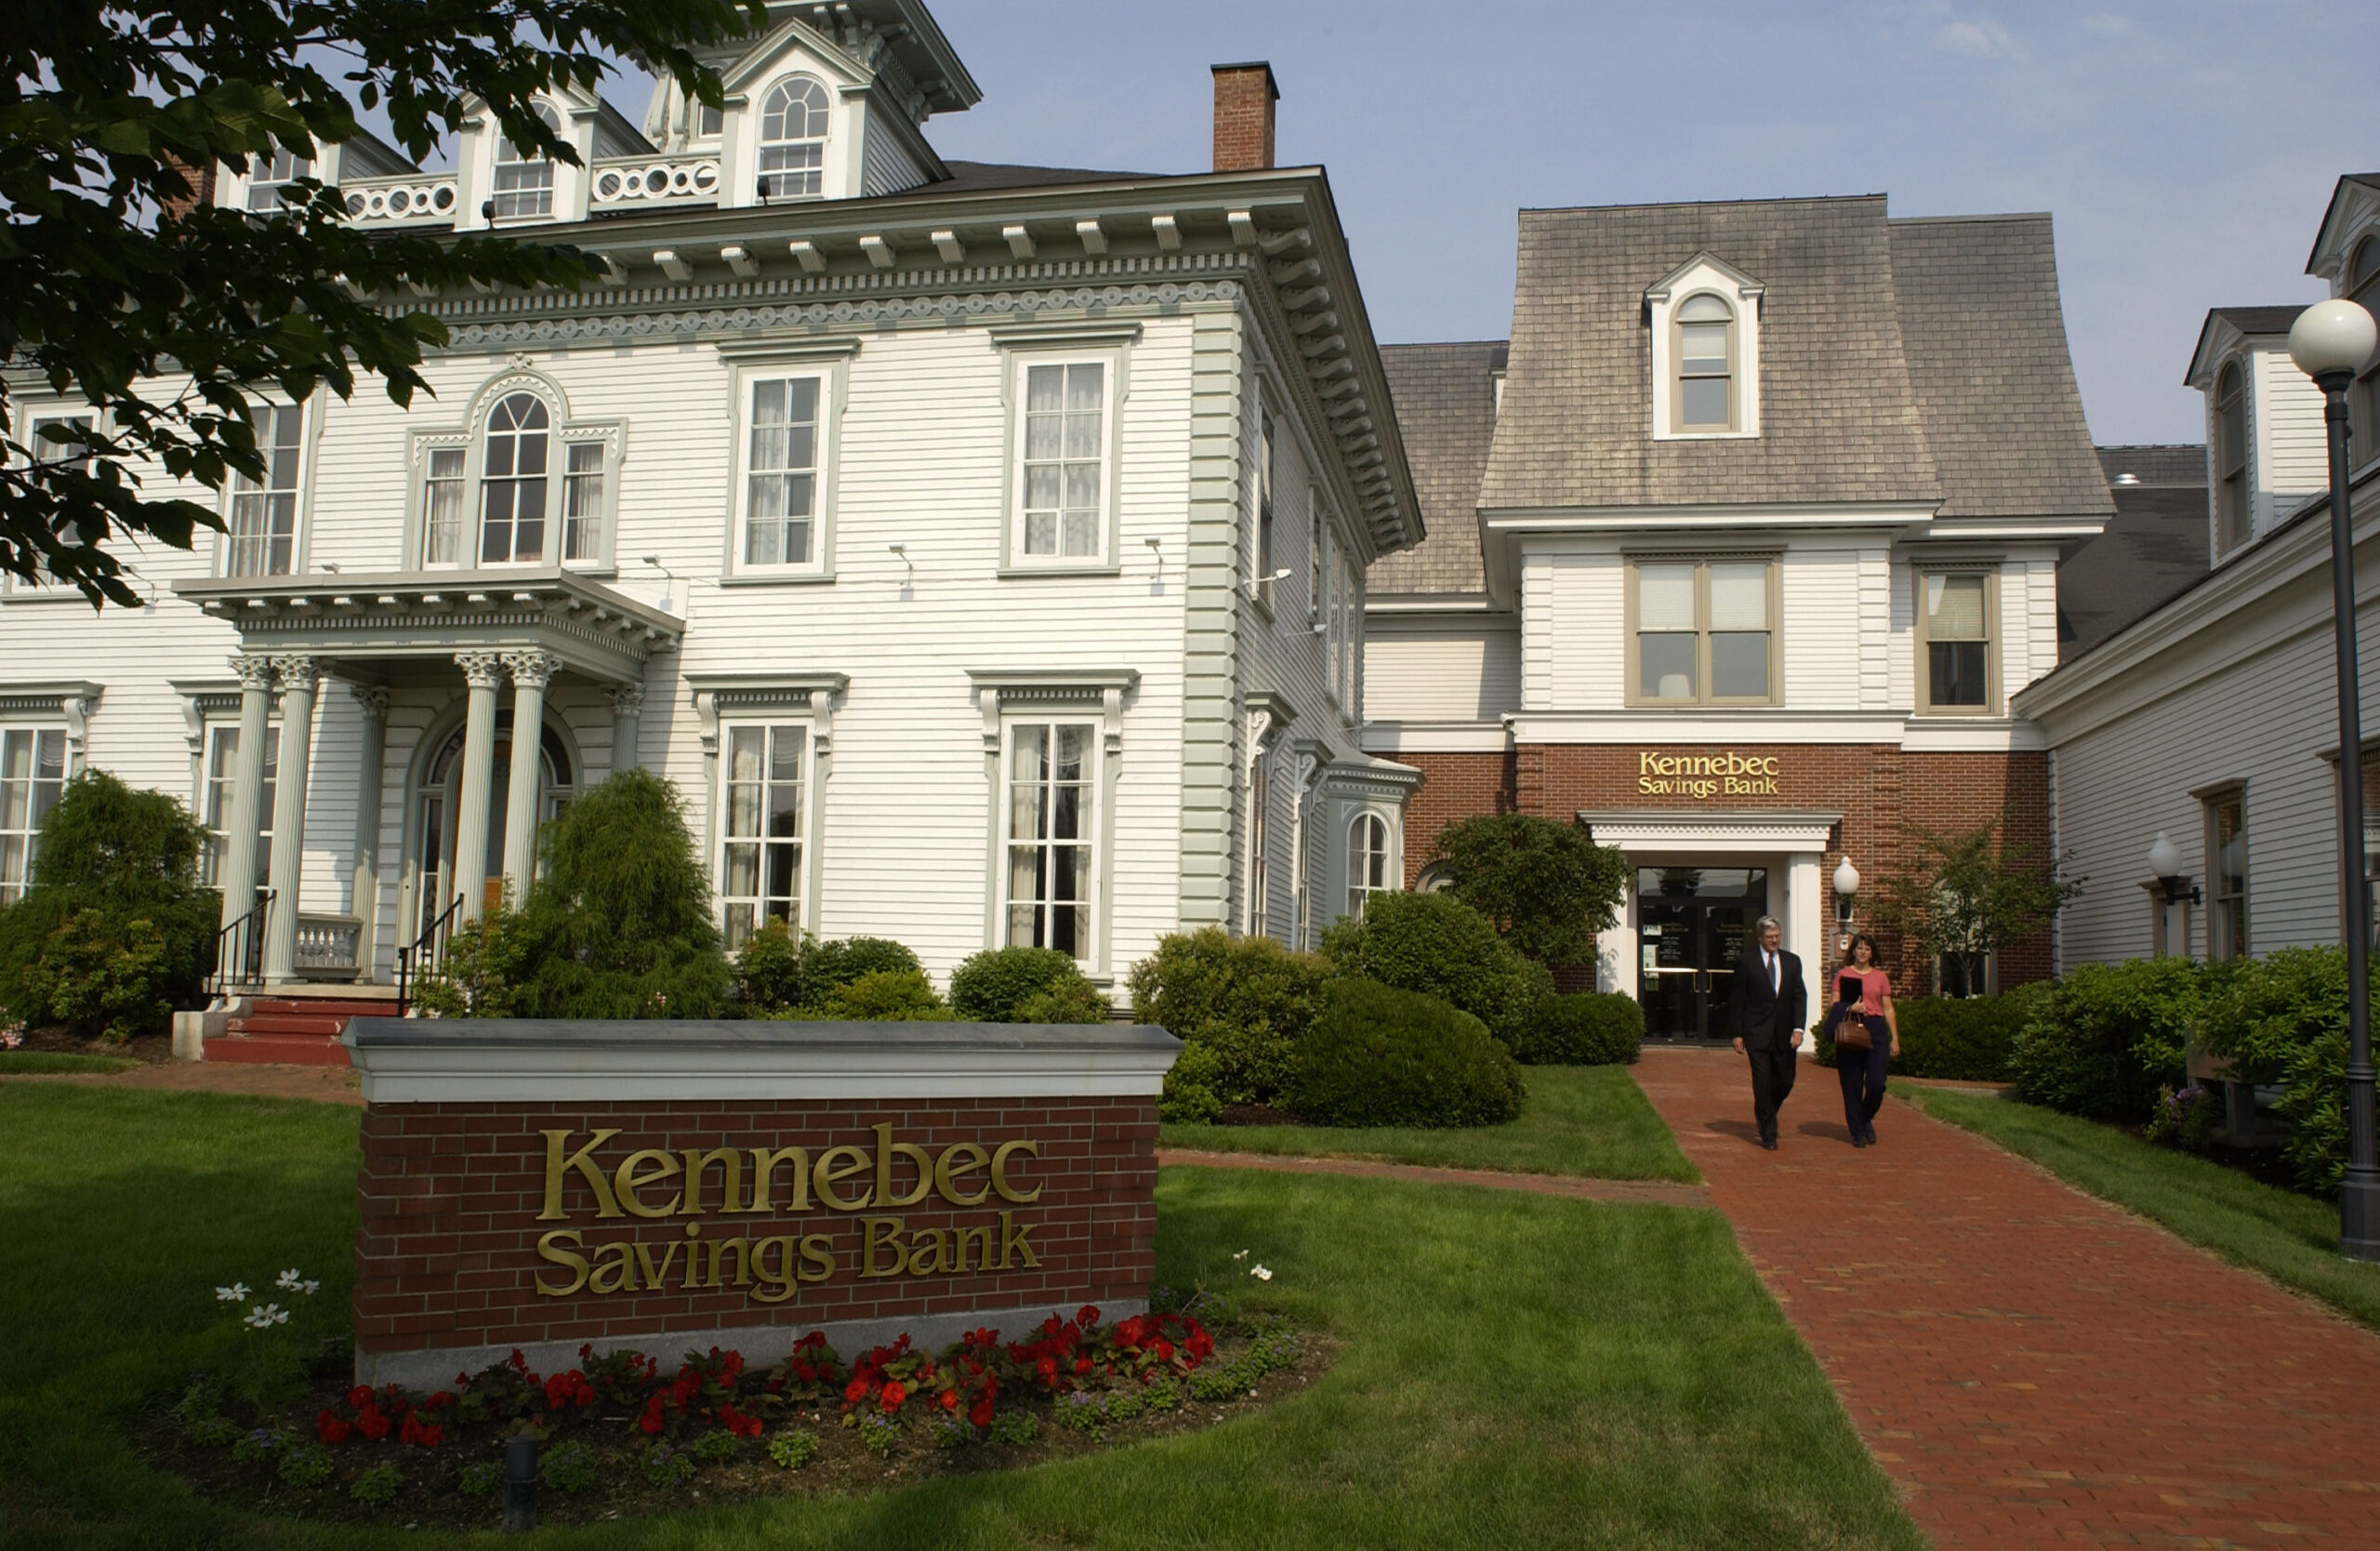 First Amendment Museum gifted $150,000 by Kennebec Savings Bank